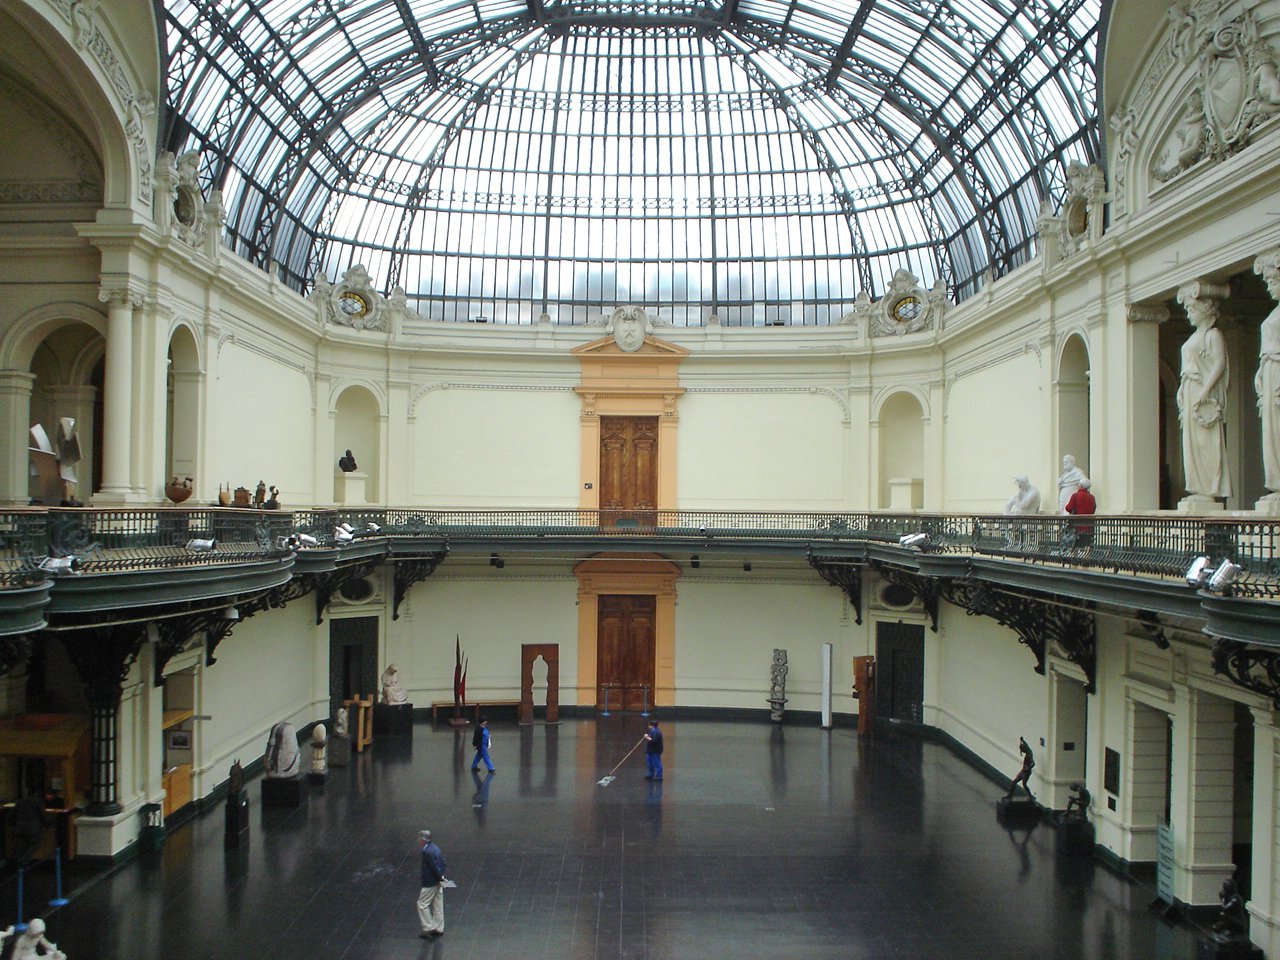 File:Hall interior Museo de Bellas Artes.jpg